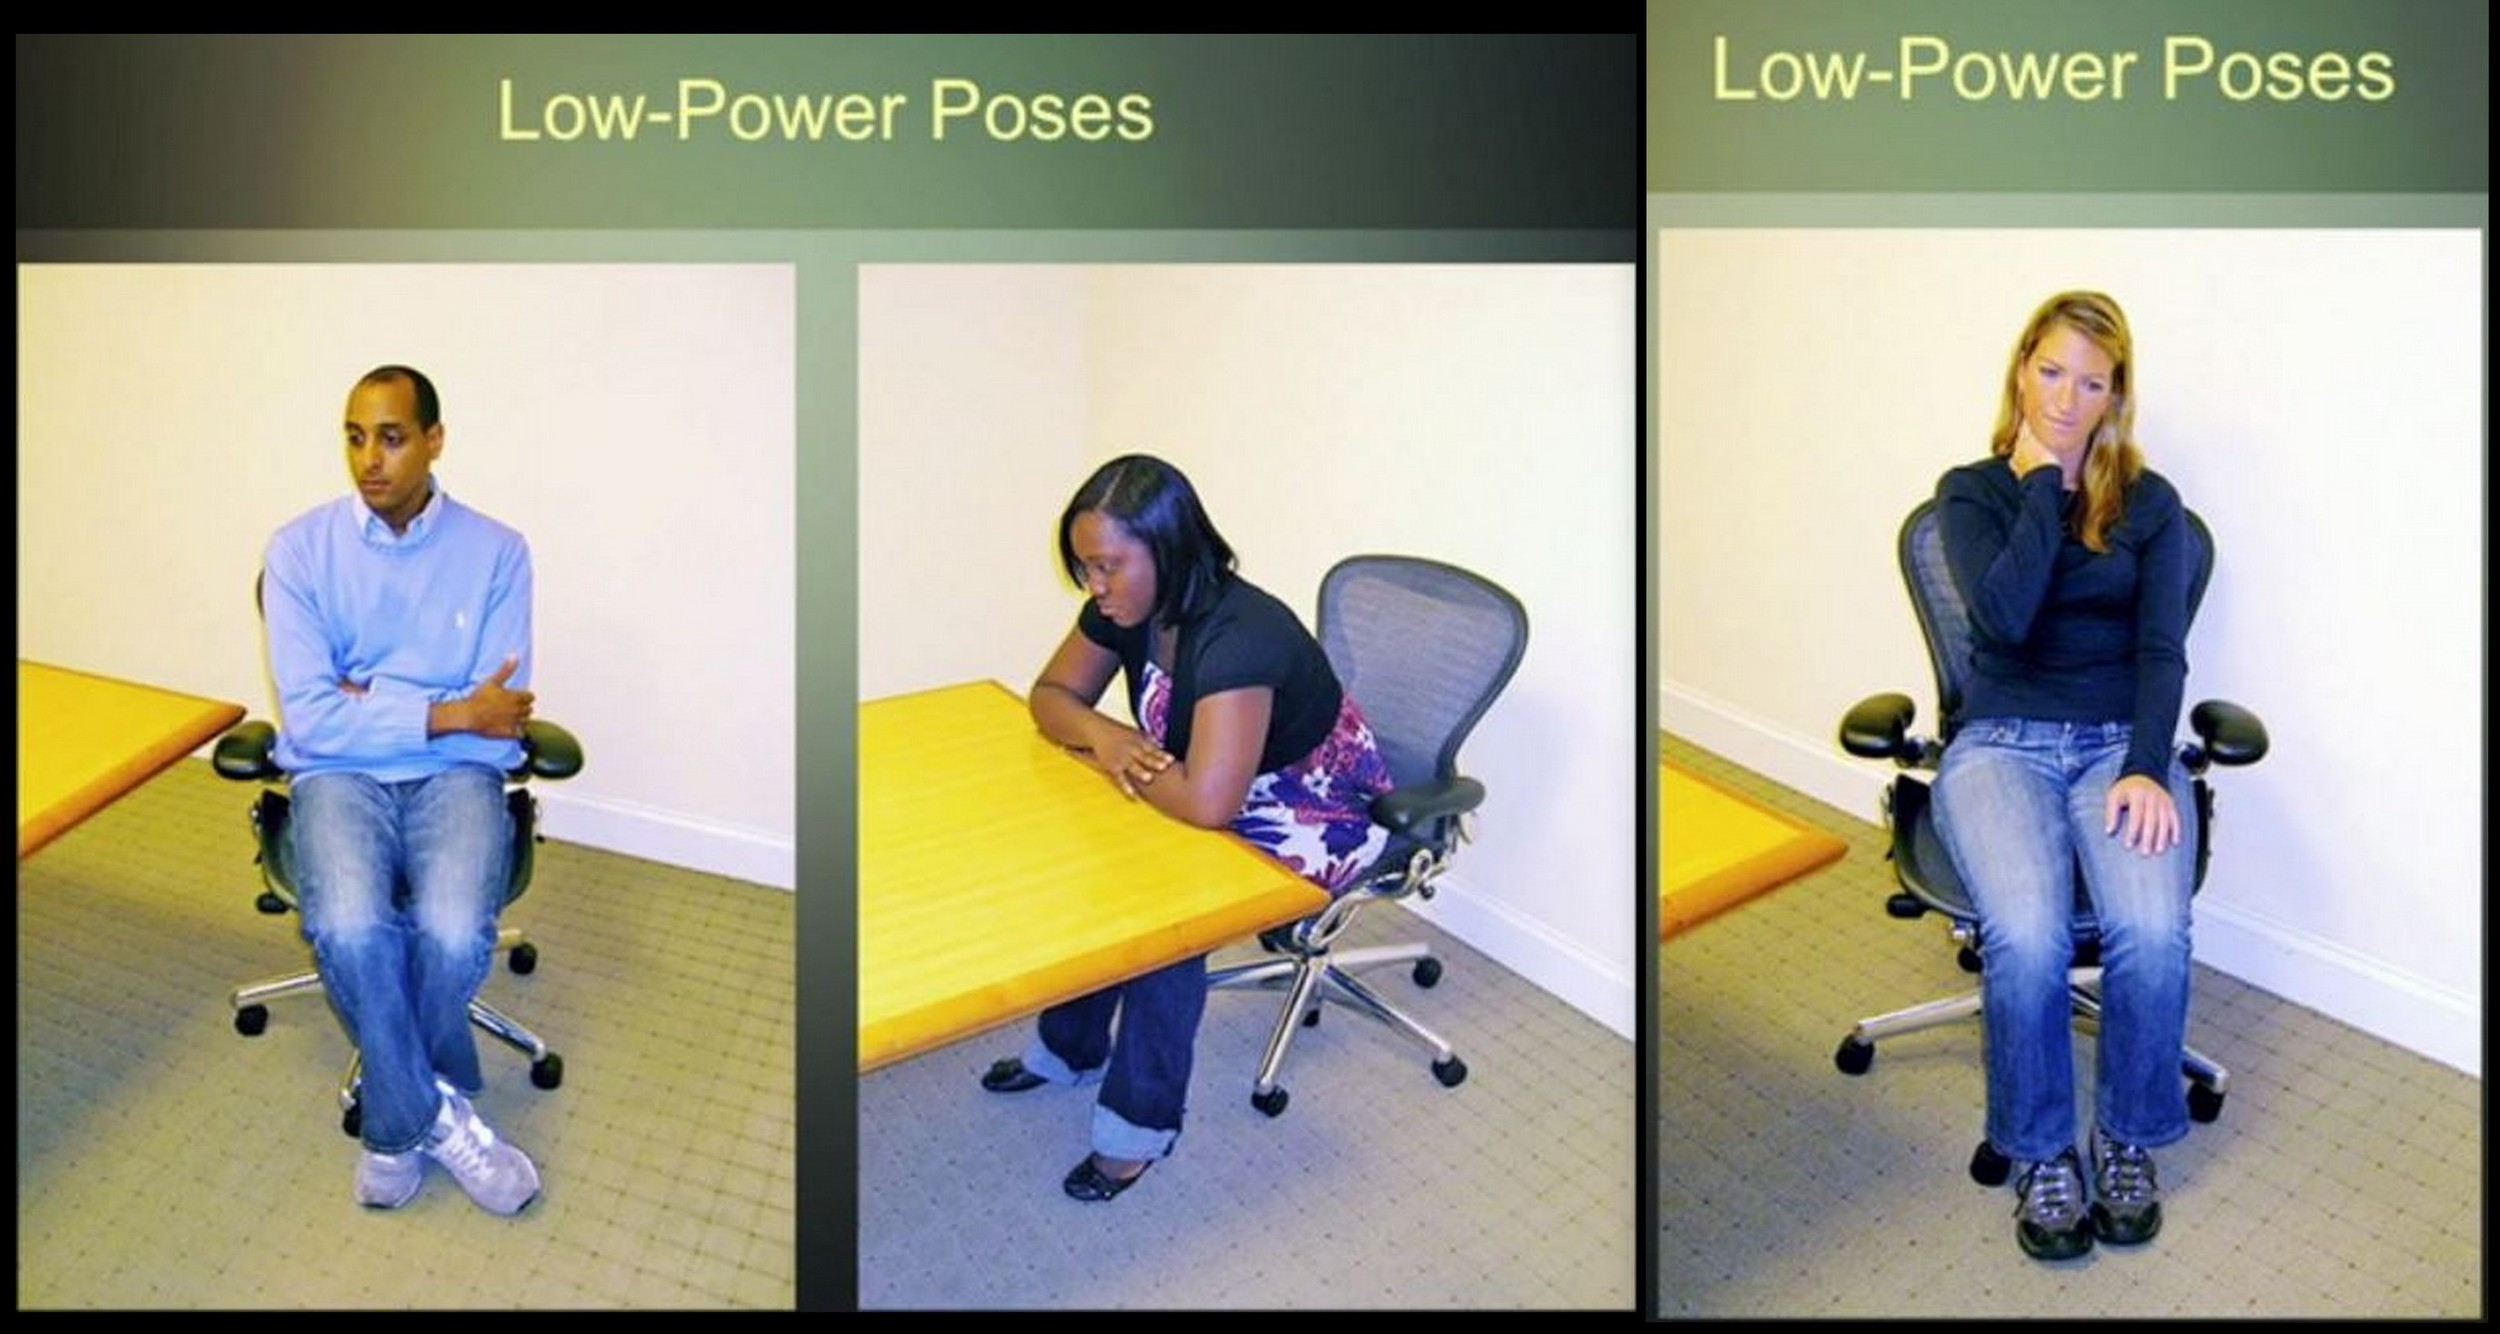 Subjects doing low power poses